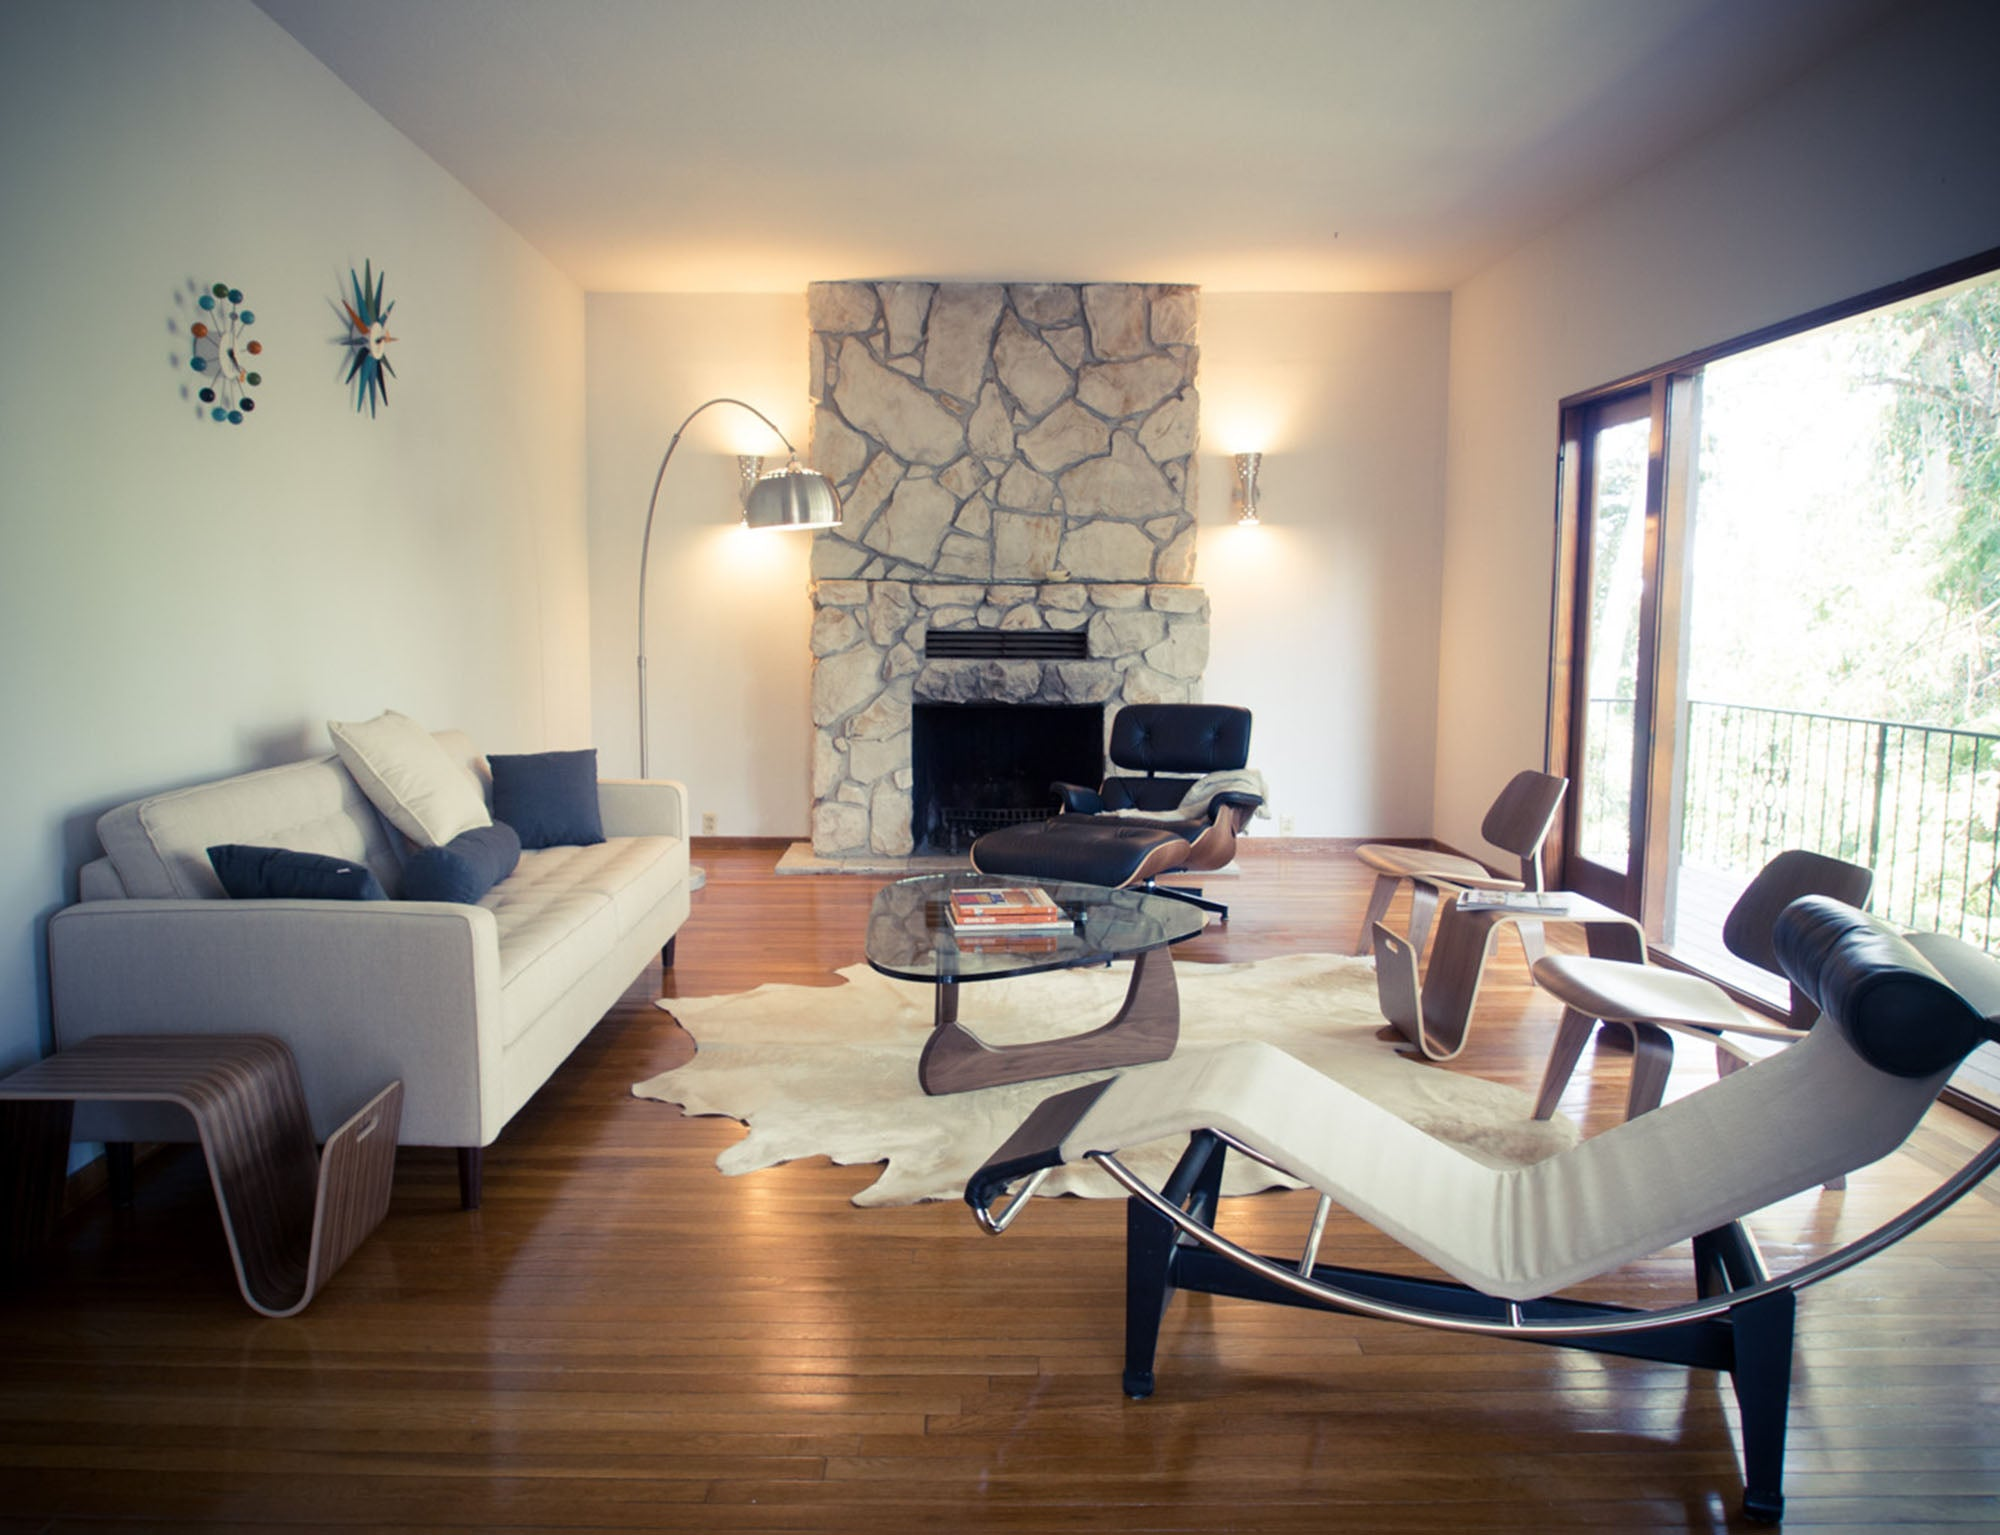 Eames Lounge Chair Living Room eames lounge chair - customer gallery | barcelona designs